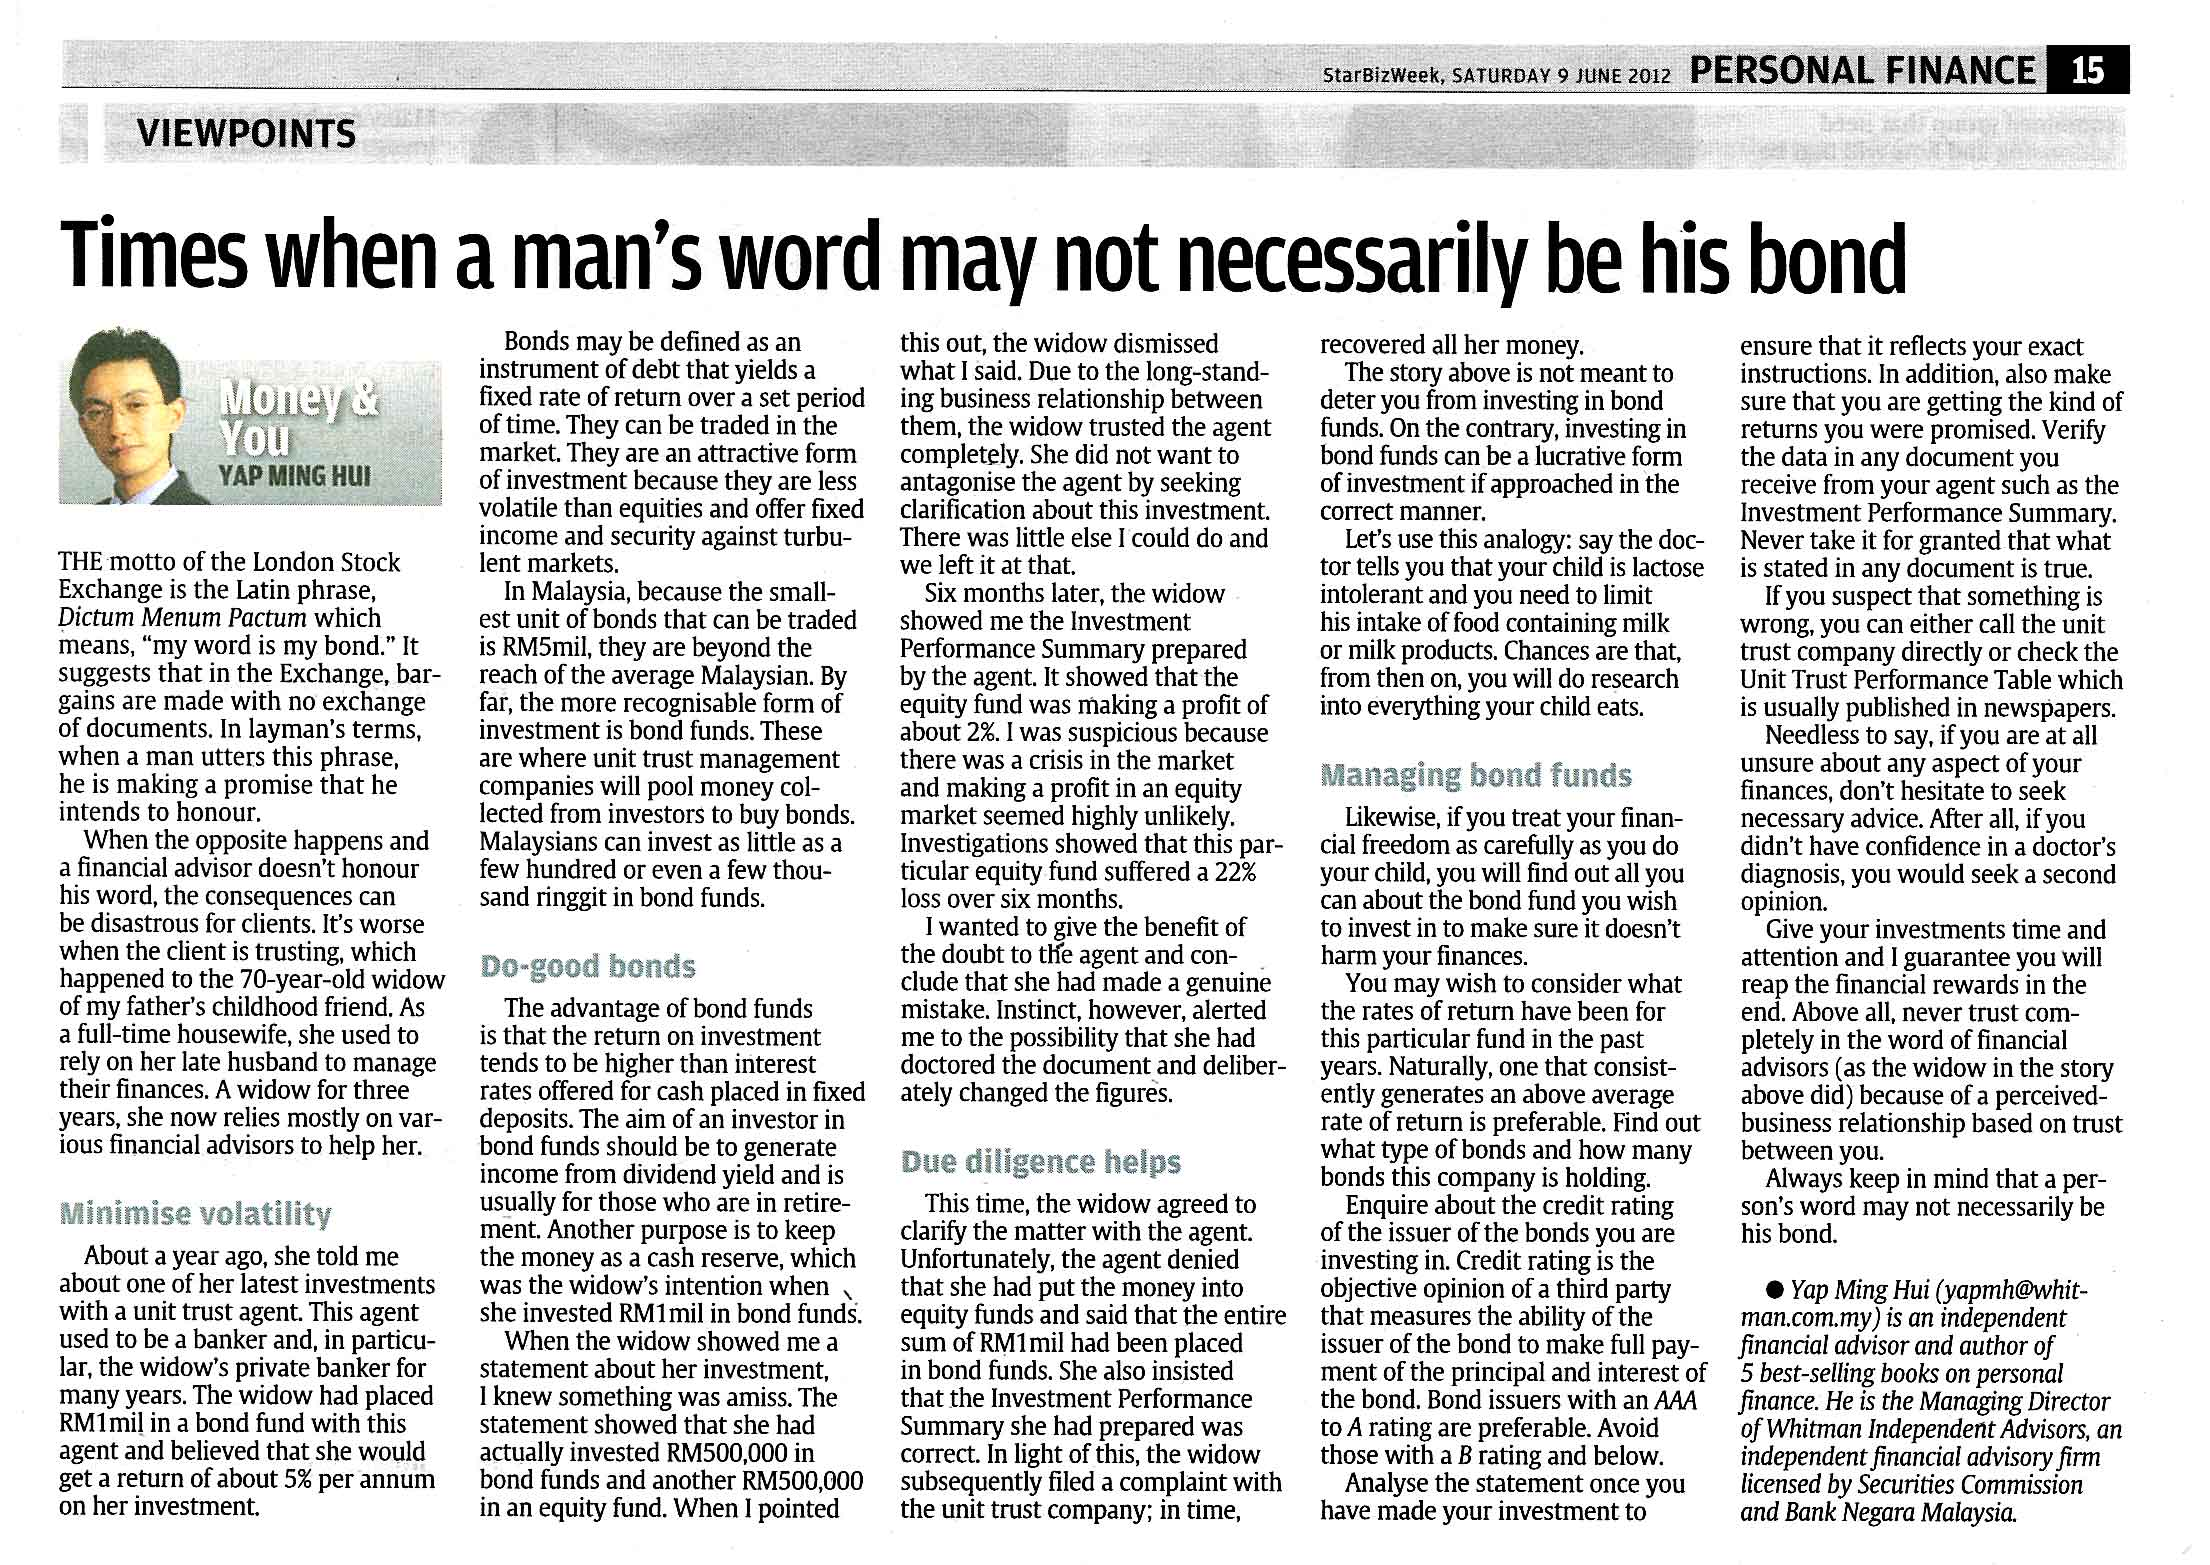 When a man's word may not necessarily be his bond - 09 Jun 2012